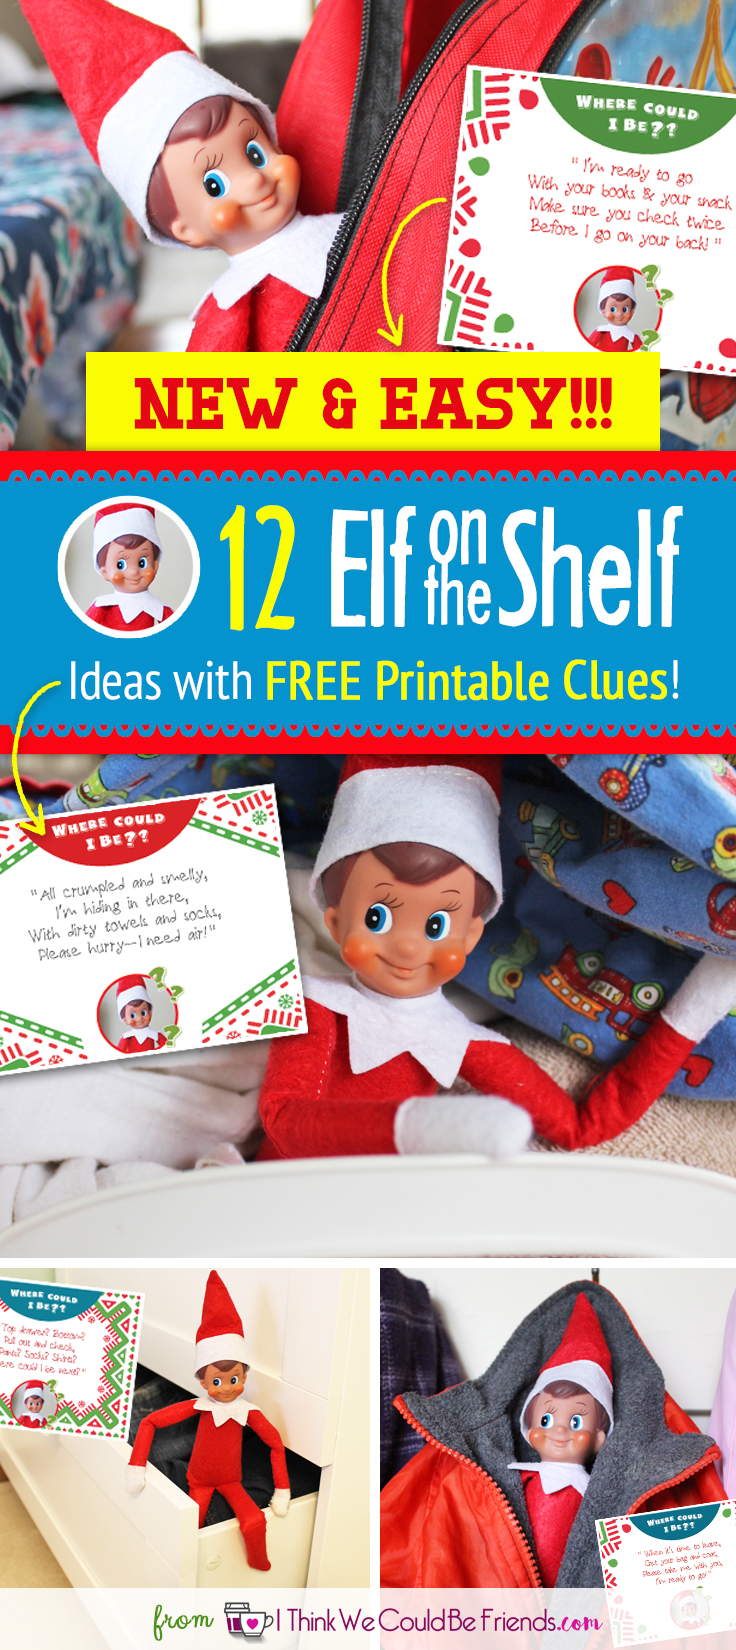 new 12 super easy quick elf on the shelf ideas with free printable clues. Black Bedroom Furniture Sets. Home Design Ideas